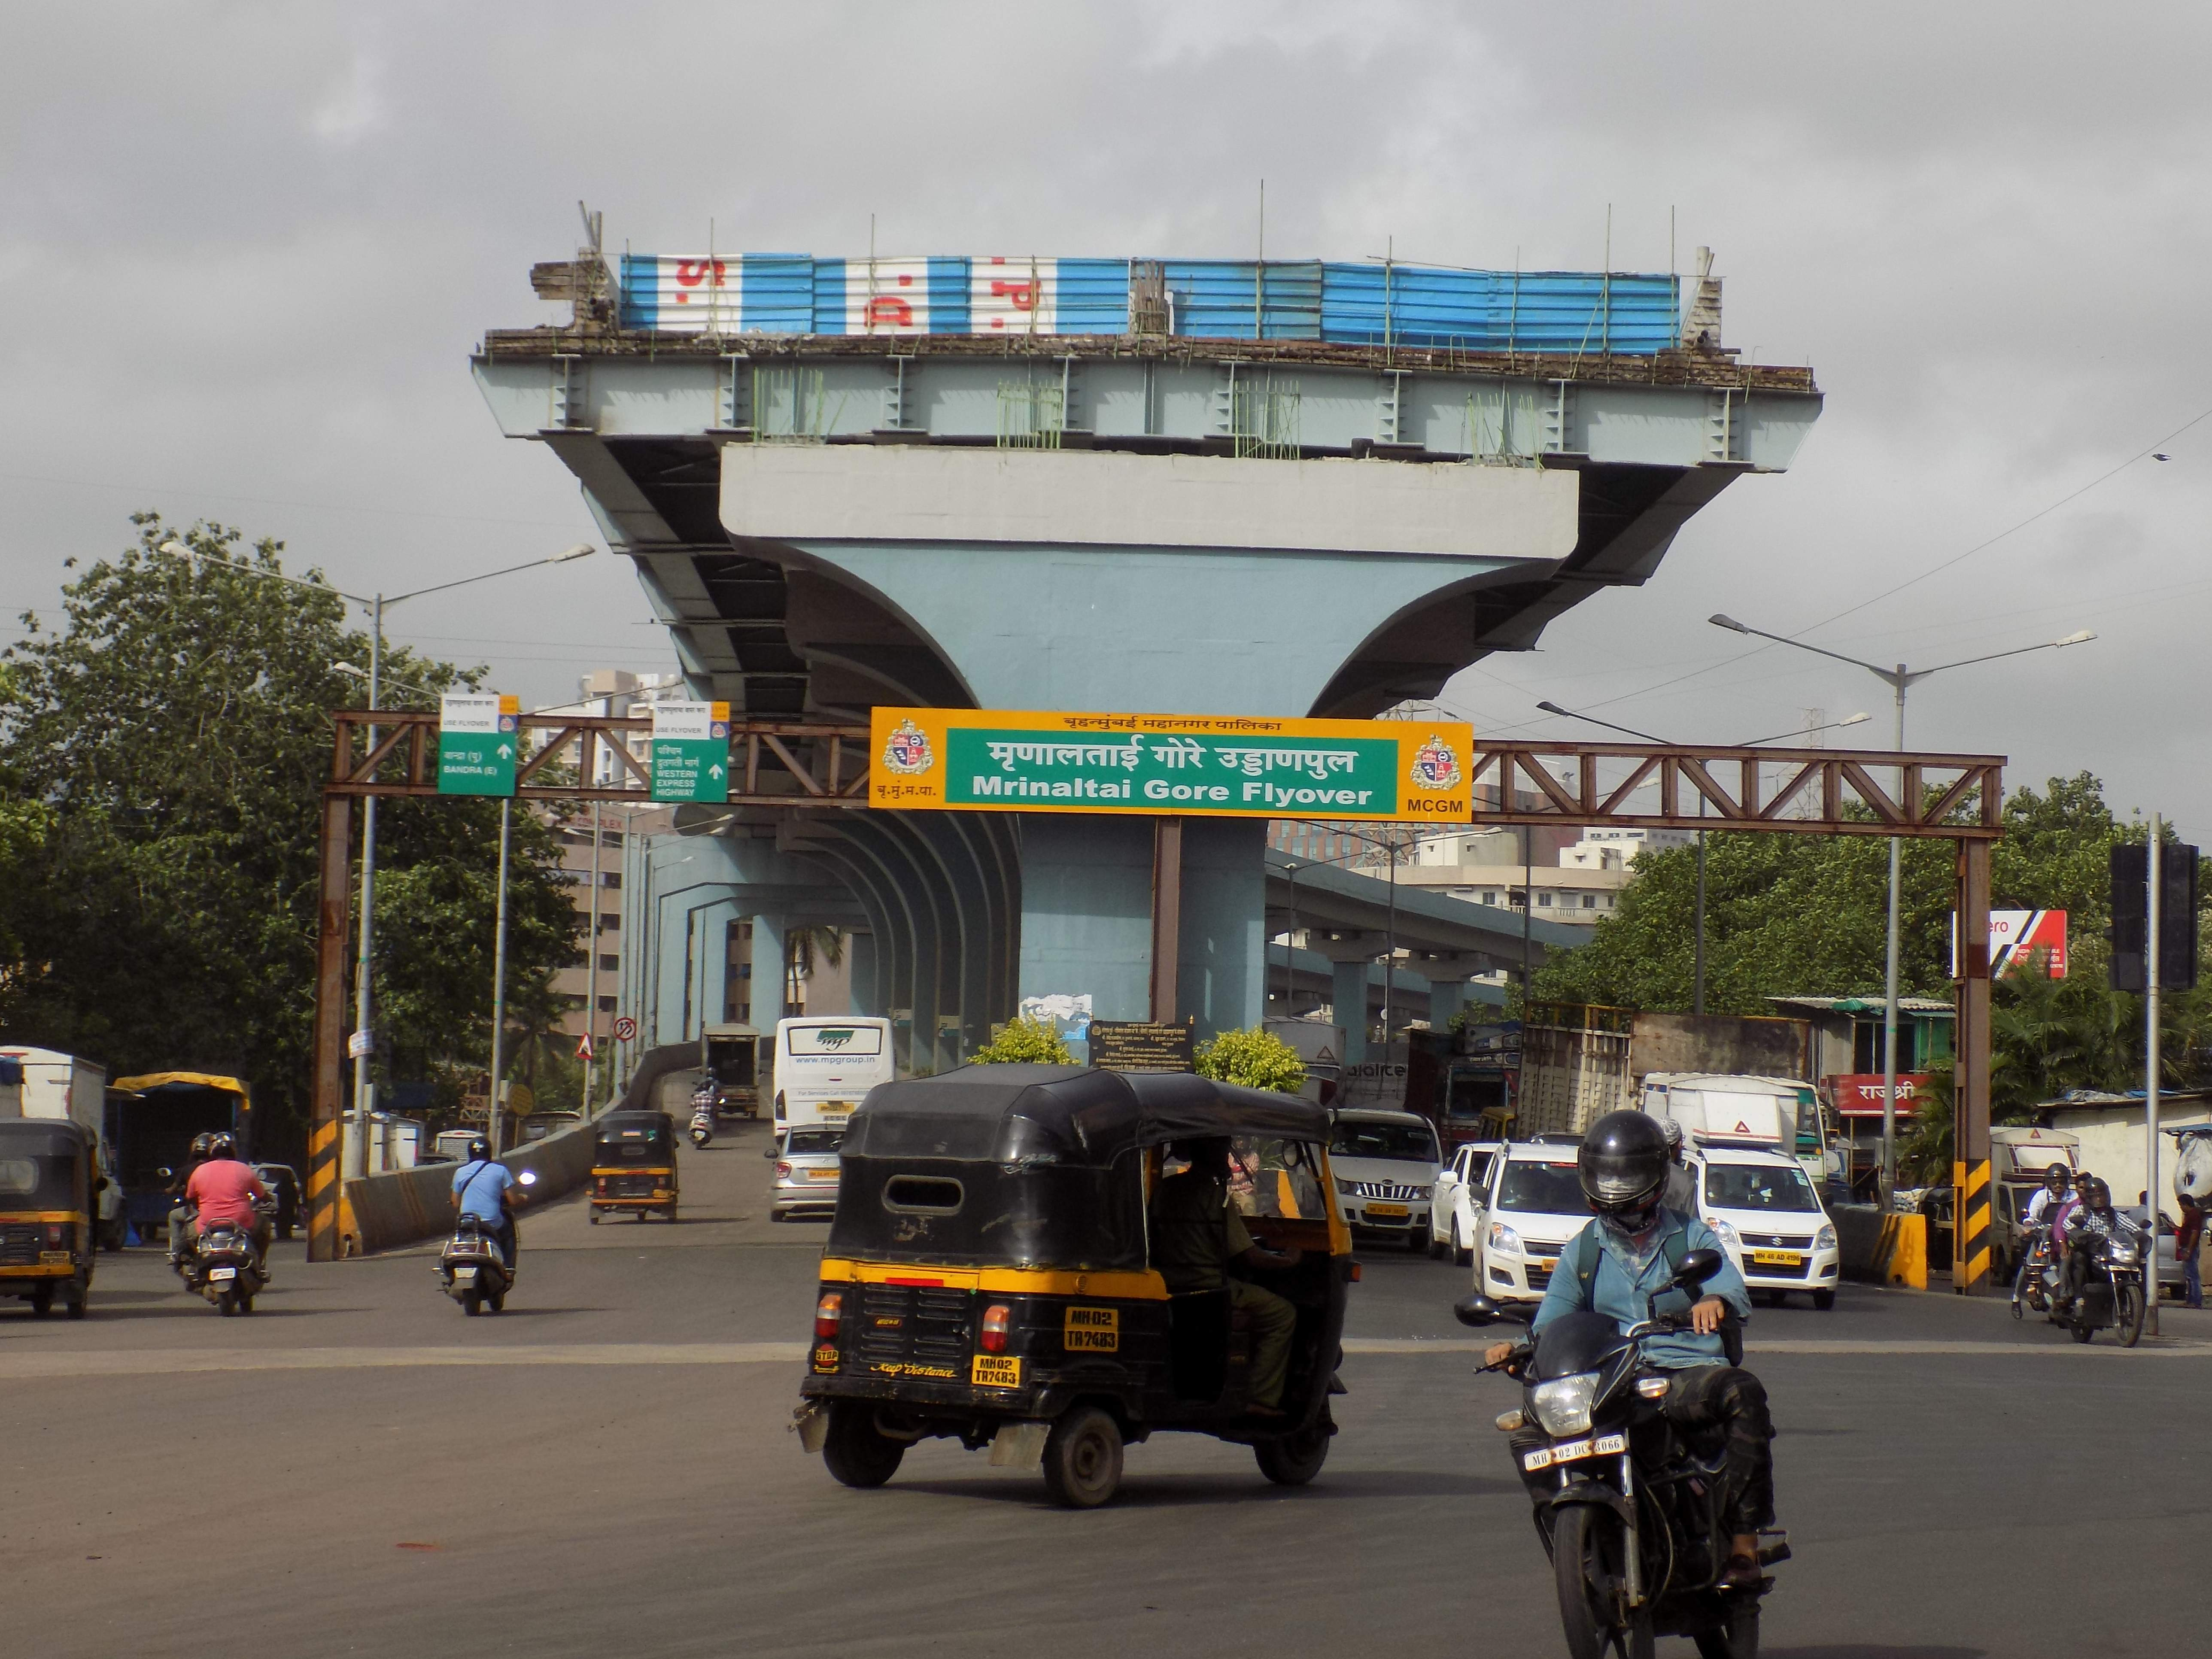 Mrinal Gore Flyover connecting to the Western Express Highway